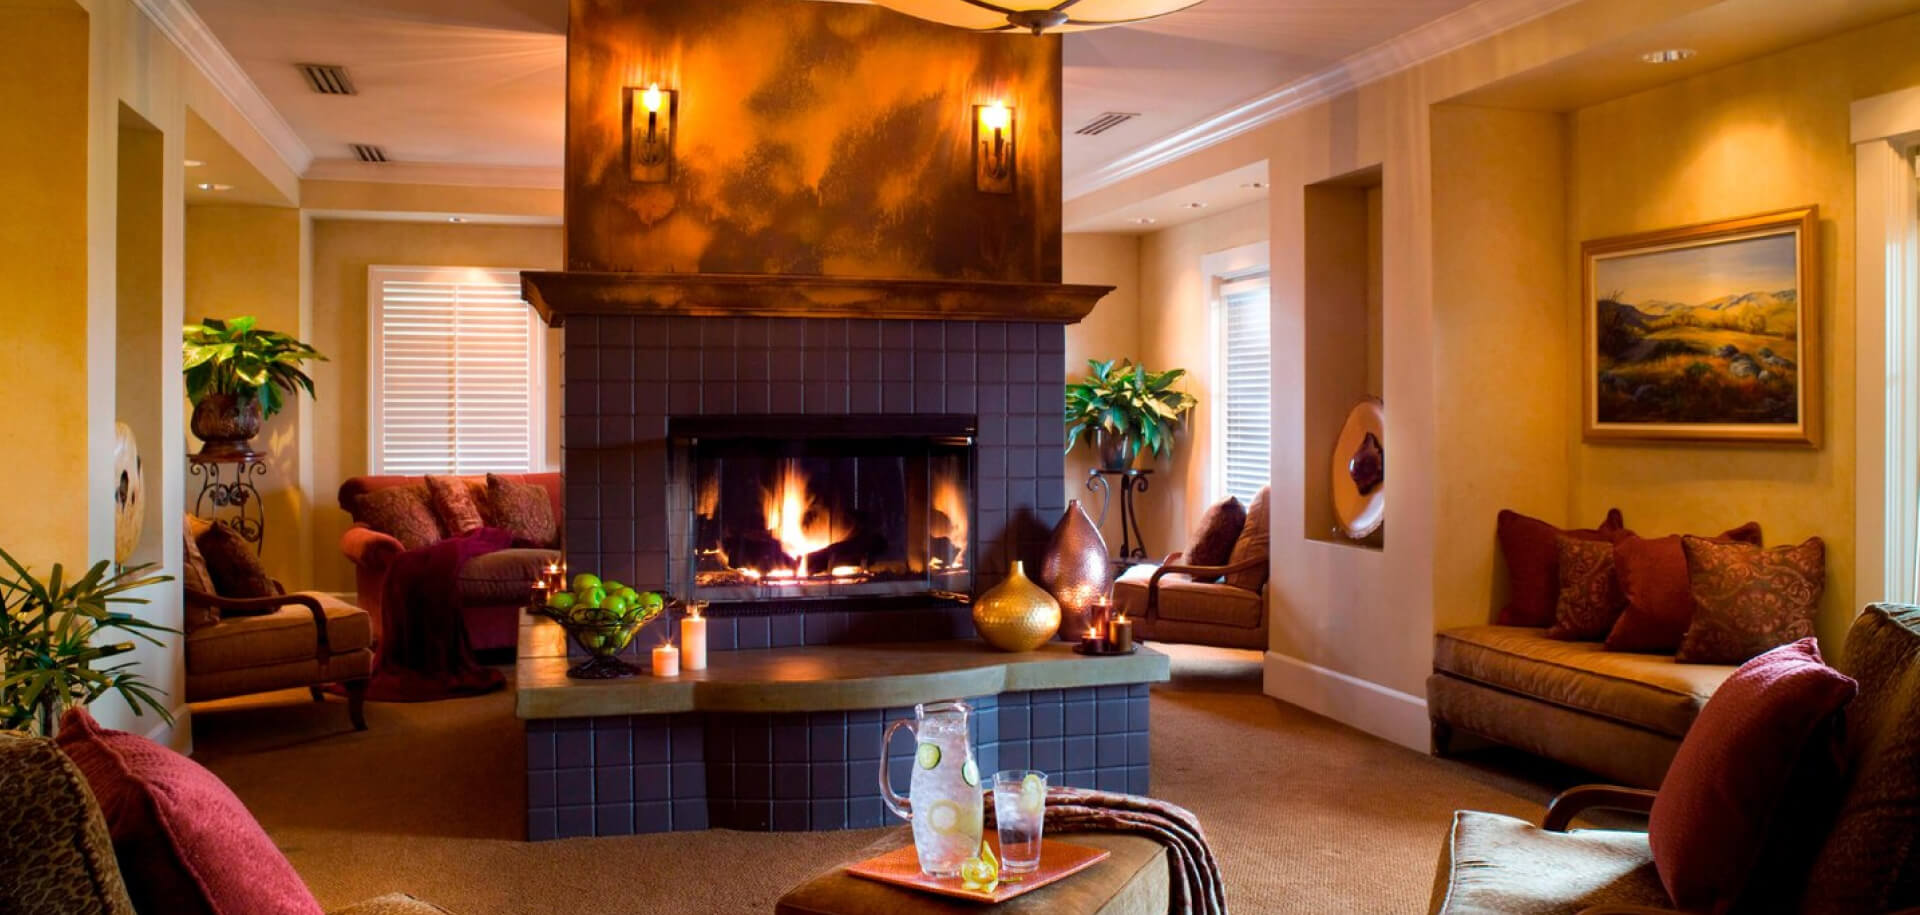 The comfortable lounge area found at Raindance Spa in Sonoma.